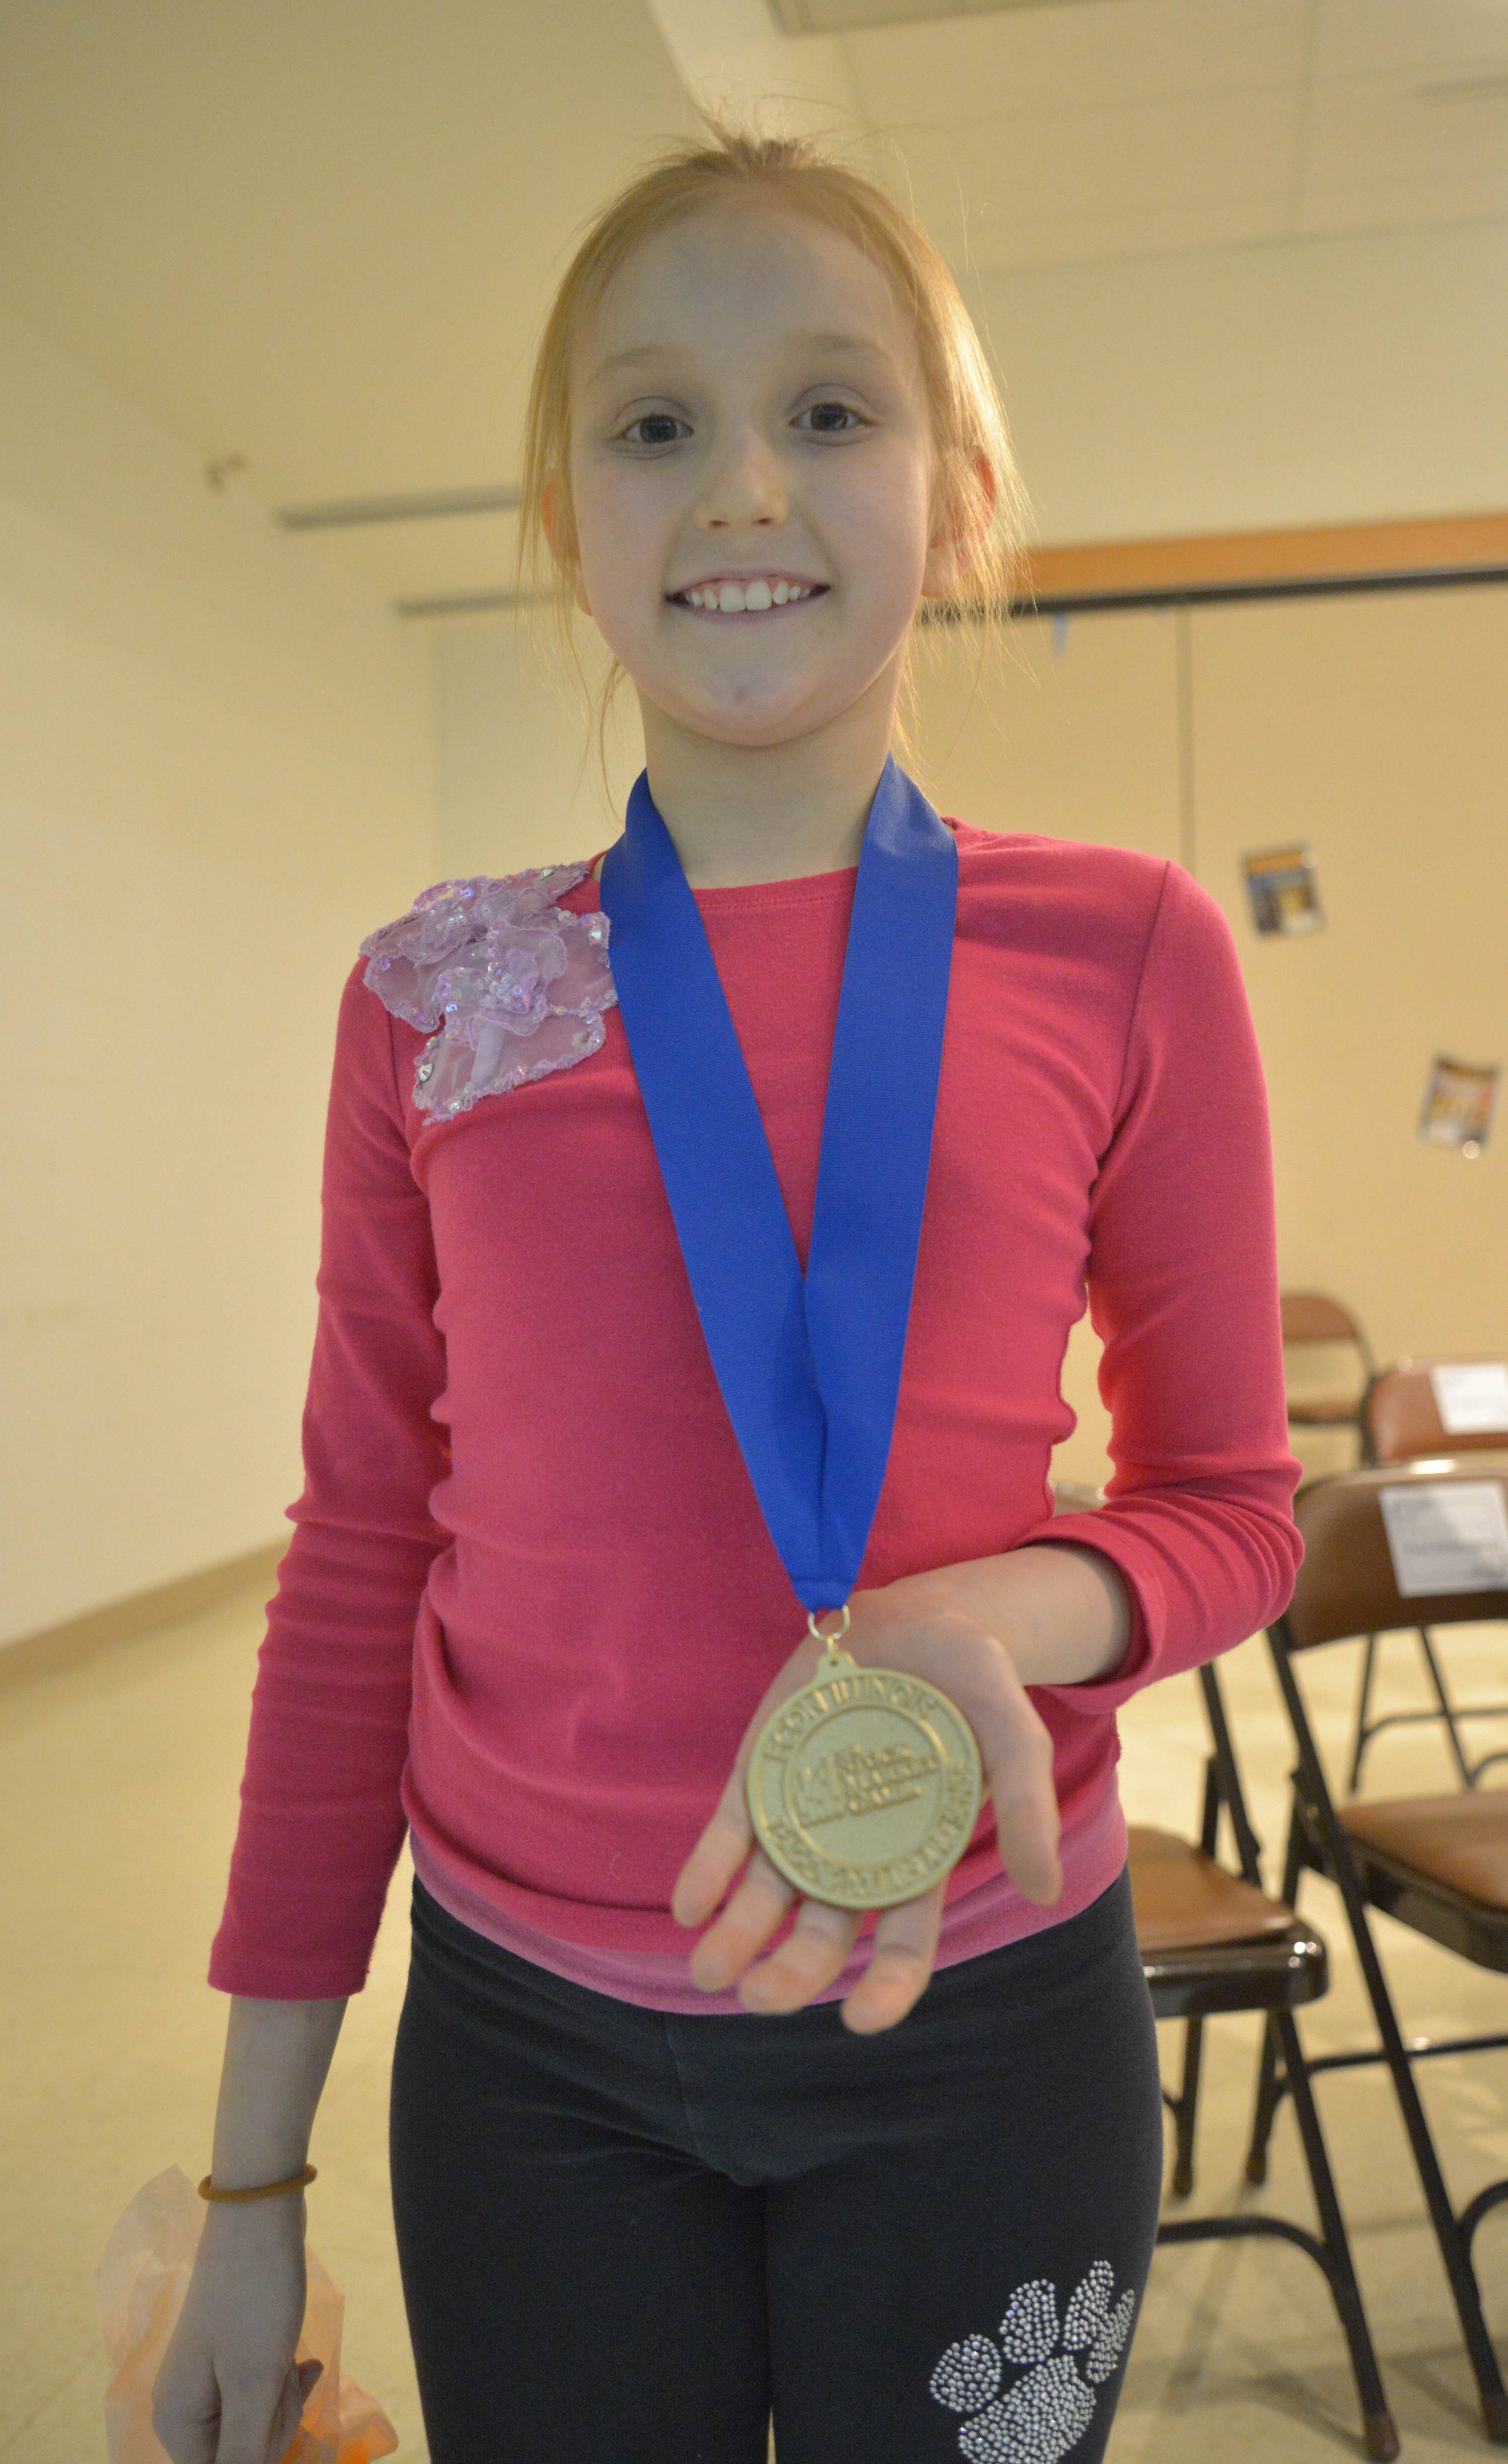 Katherine Smirnov, 10, displays the medal she received Thursday for winning the elementary division of the fall 2013 InvestWrite essay contest for her piece recommending Boeing and Microsoft as sound long-term investments. Katherine attends Naperville's Fry Elementary School in Indian Prairie Unit District 204 and wrote the essay as part of a class taught by Sharon Phares.